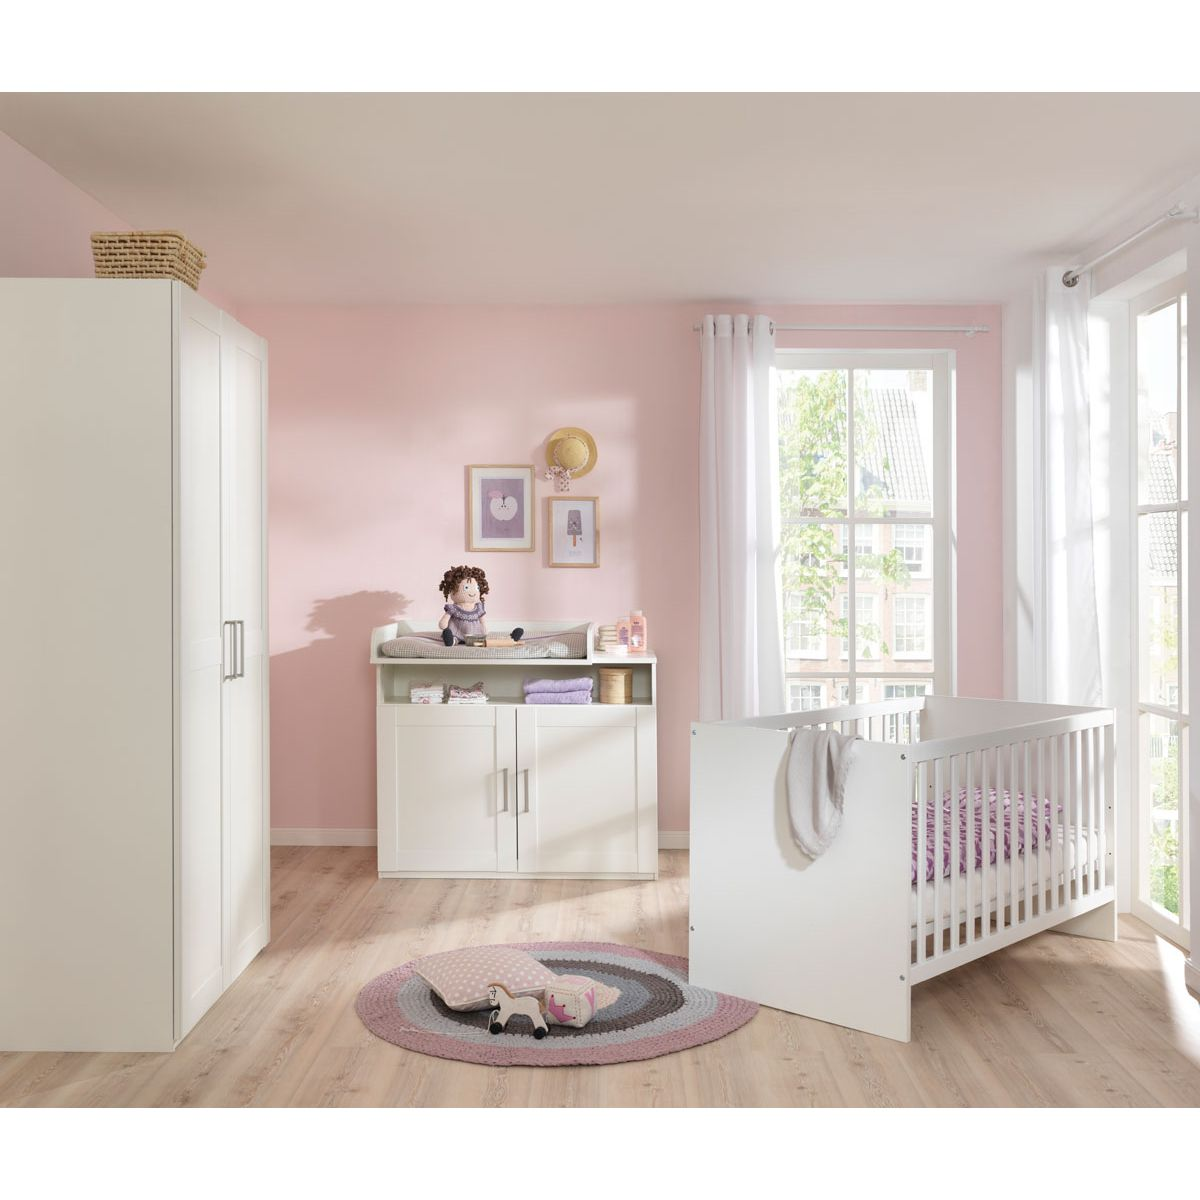 WELLEMÖBEL COUNTRY Kinderzimmer » auf Babyonlineshop.de